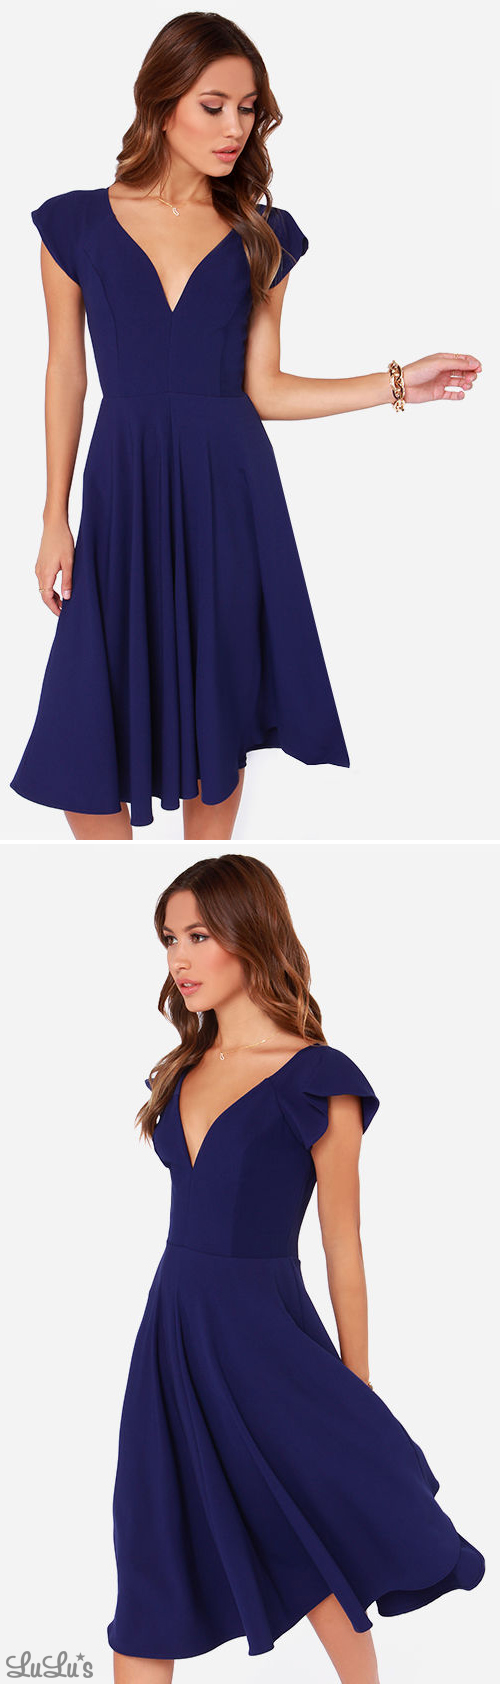 Lulus wedding guest dresses  Exclusive Skirts So Good Royal Blue Midi Dress  My Style